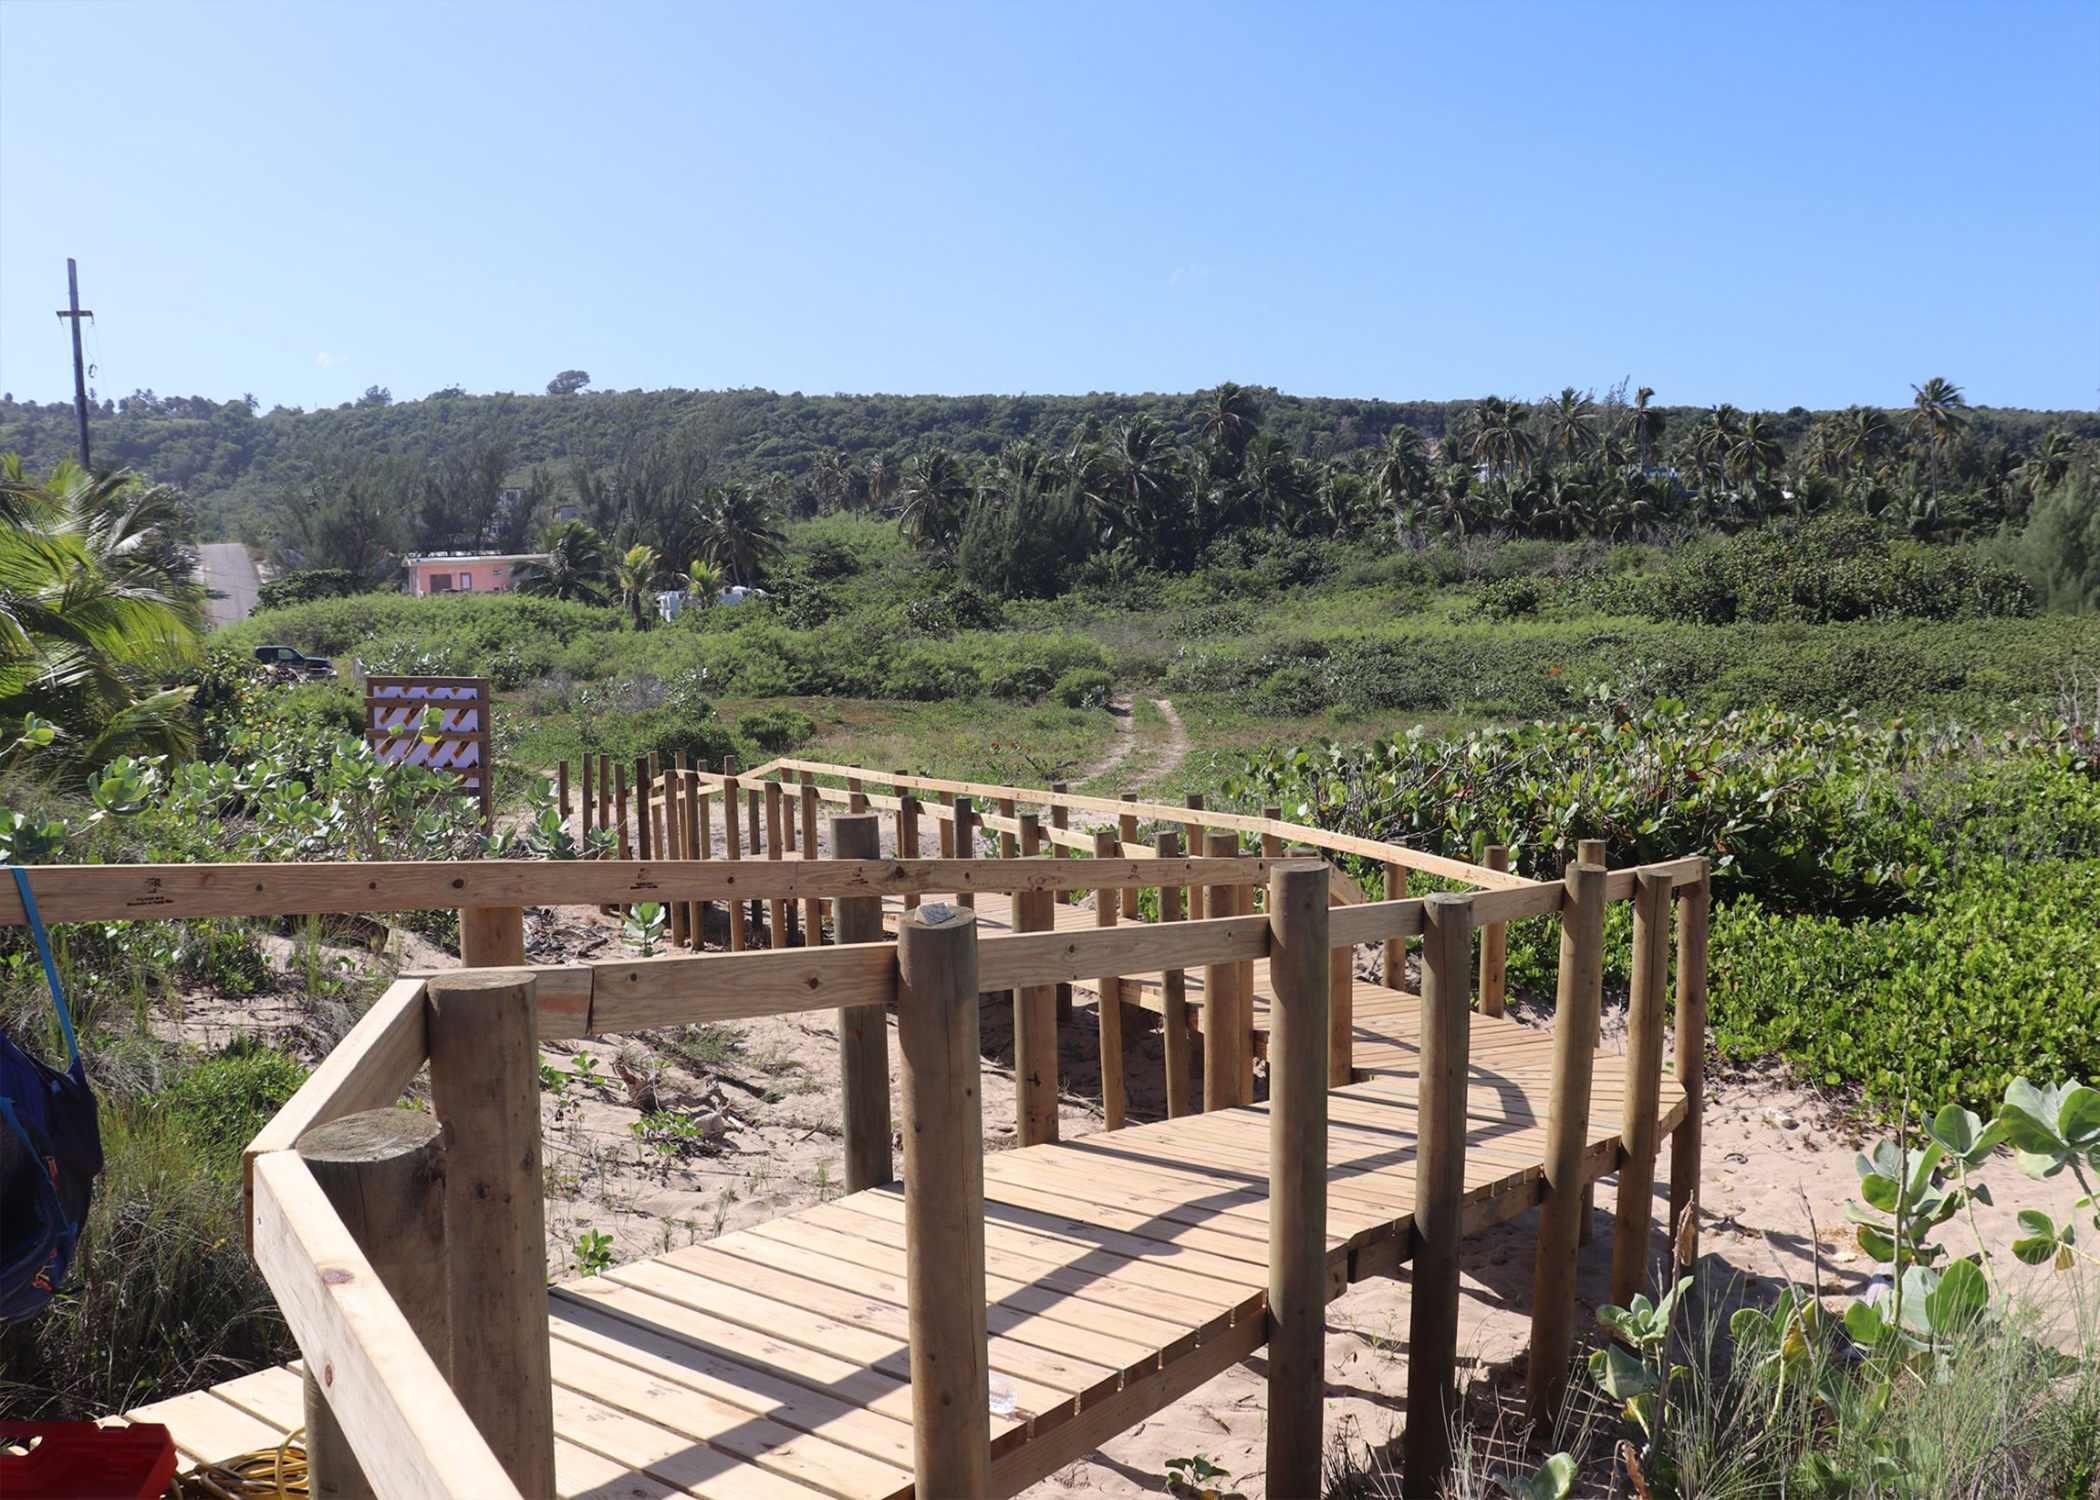 Wooden boardwalk redirects foot traffic to protect coastal dunes as an ecological restoration strategy in Puerto Rico.